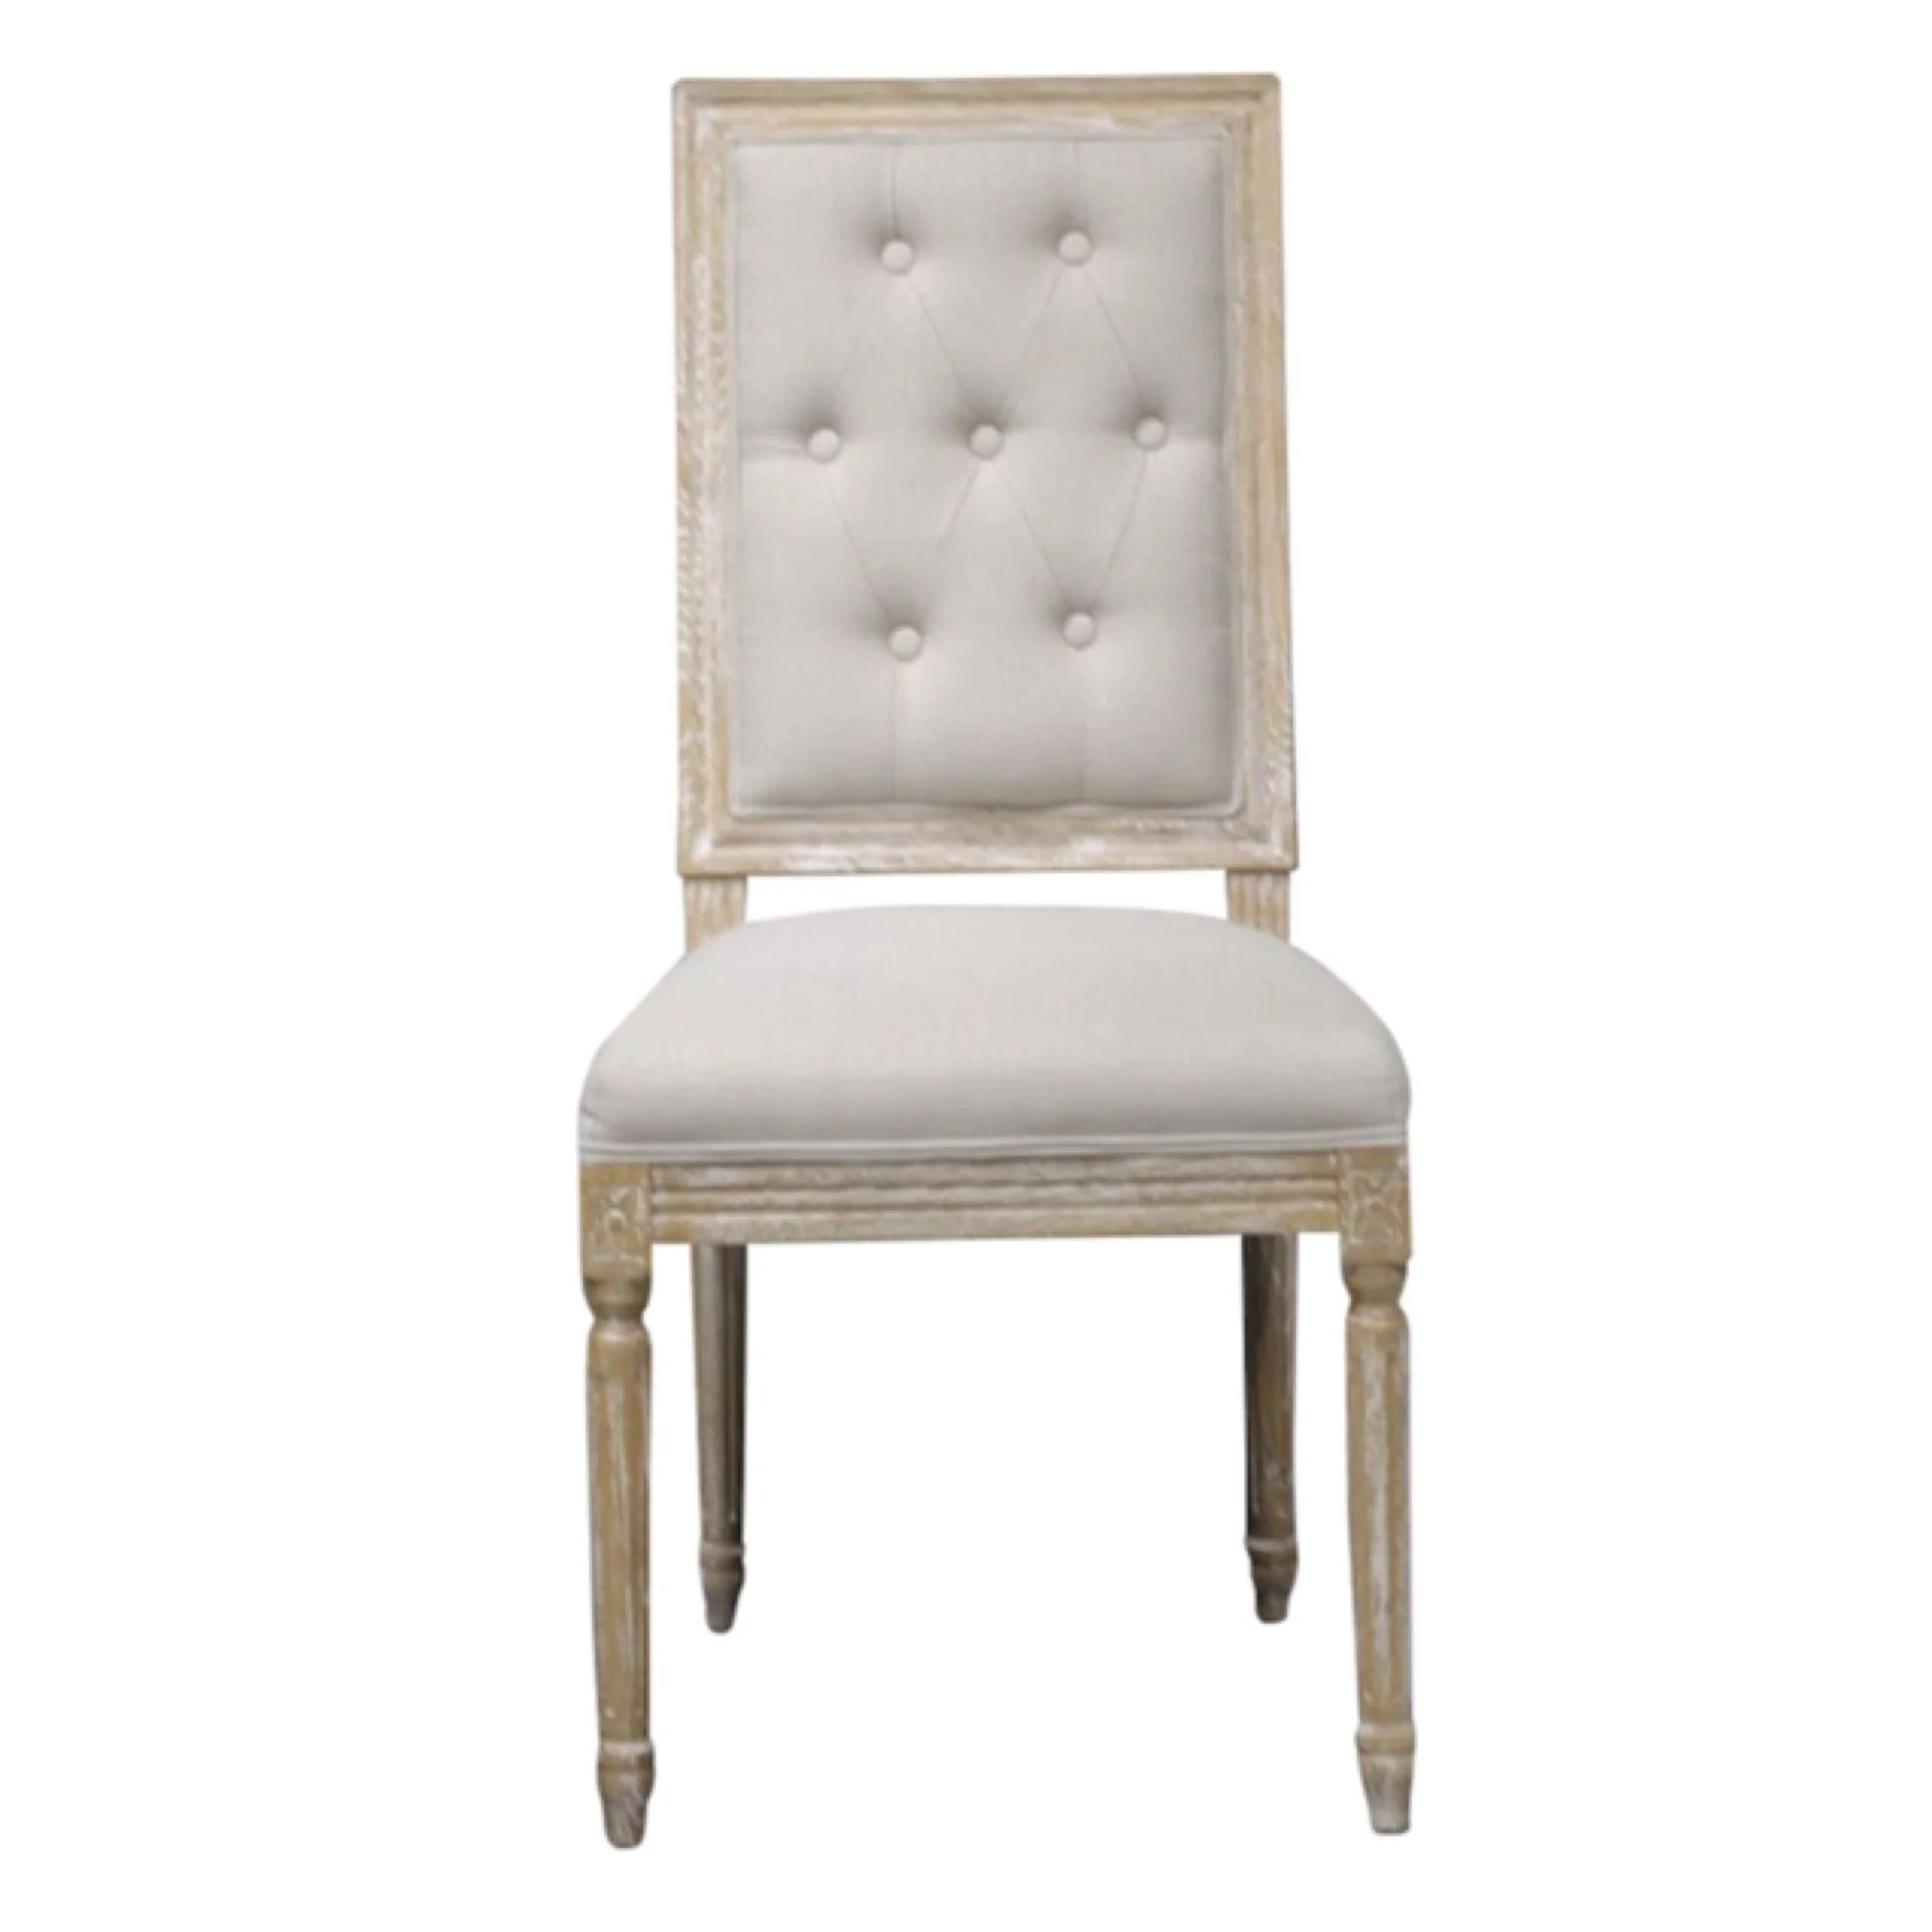 Restoration Hardware Dining Chairs Butler Dining Chair